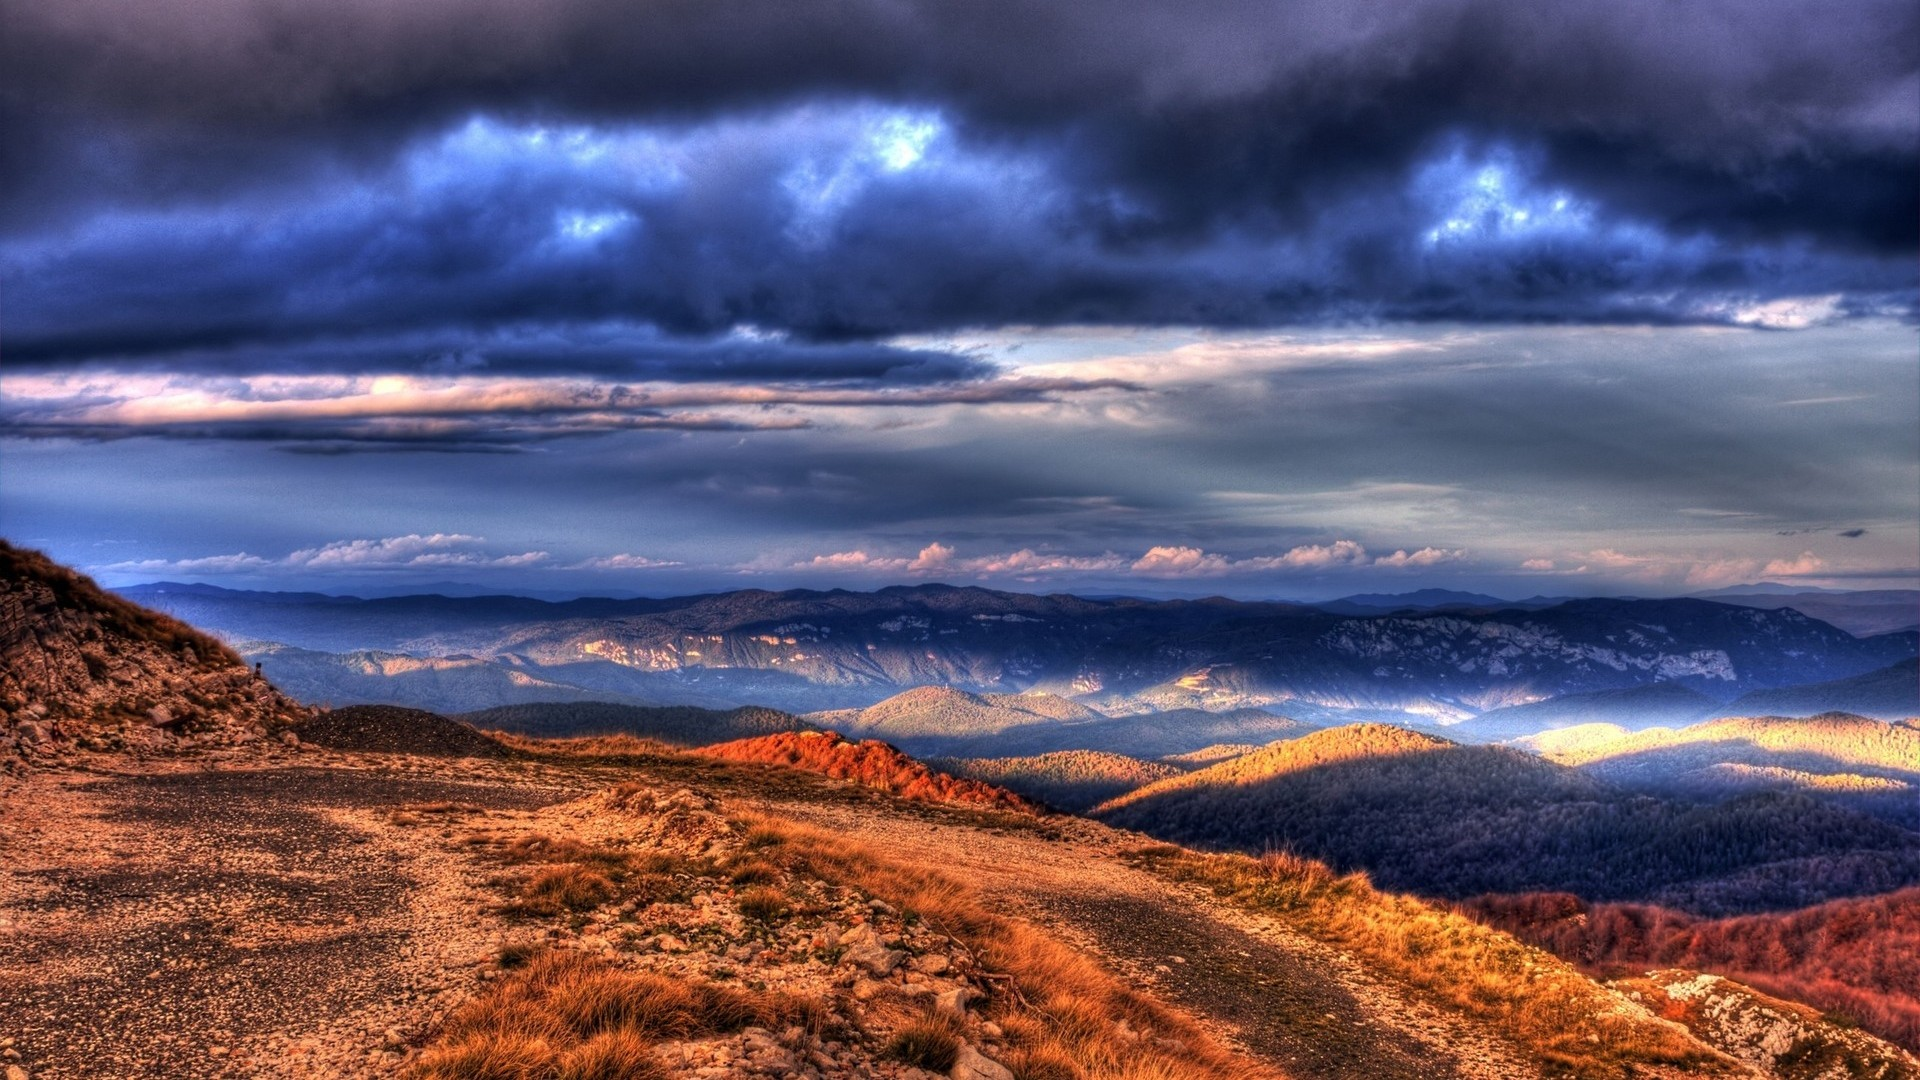 1920x1080 Download Wallpaper 1920x1080 Mountains, Evening, Clouds, Colors Full HD 1080p HD Background